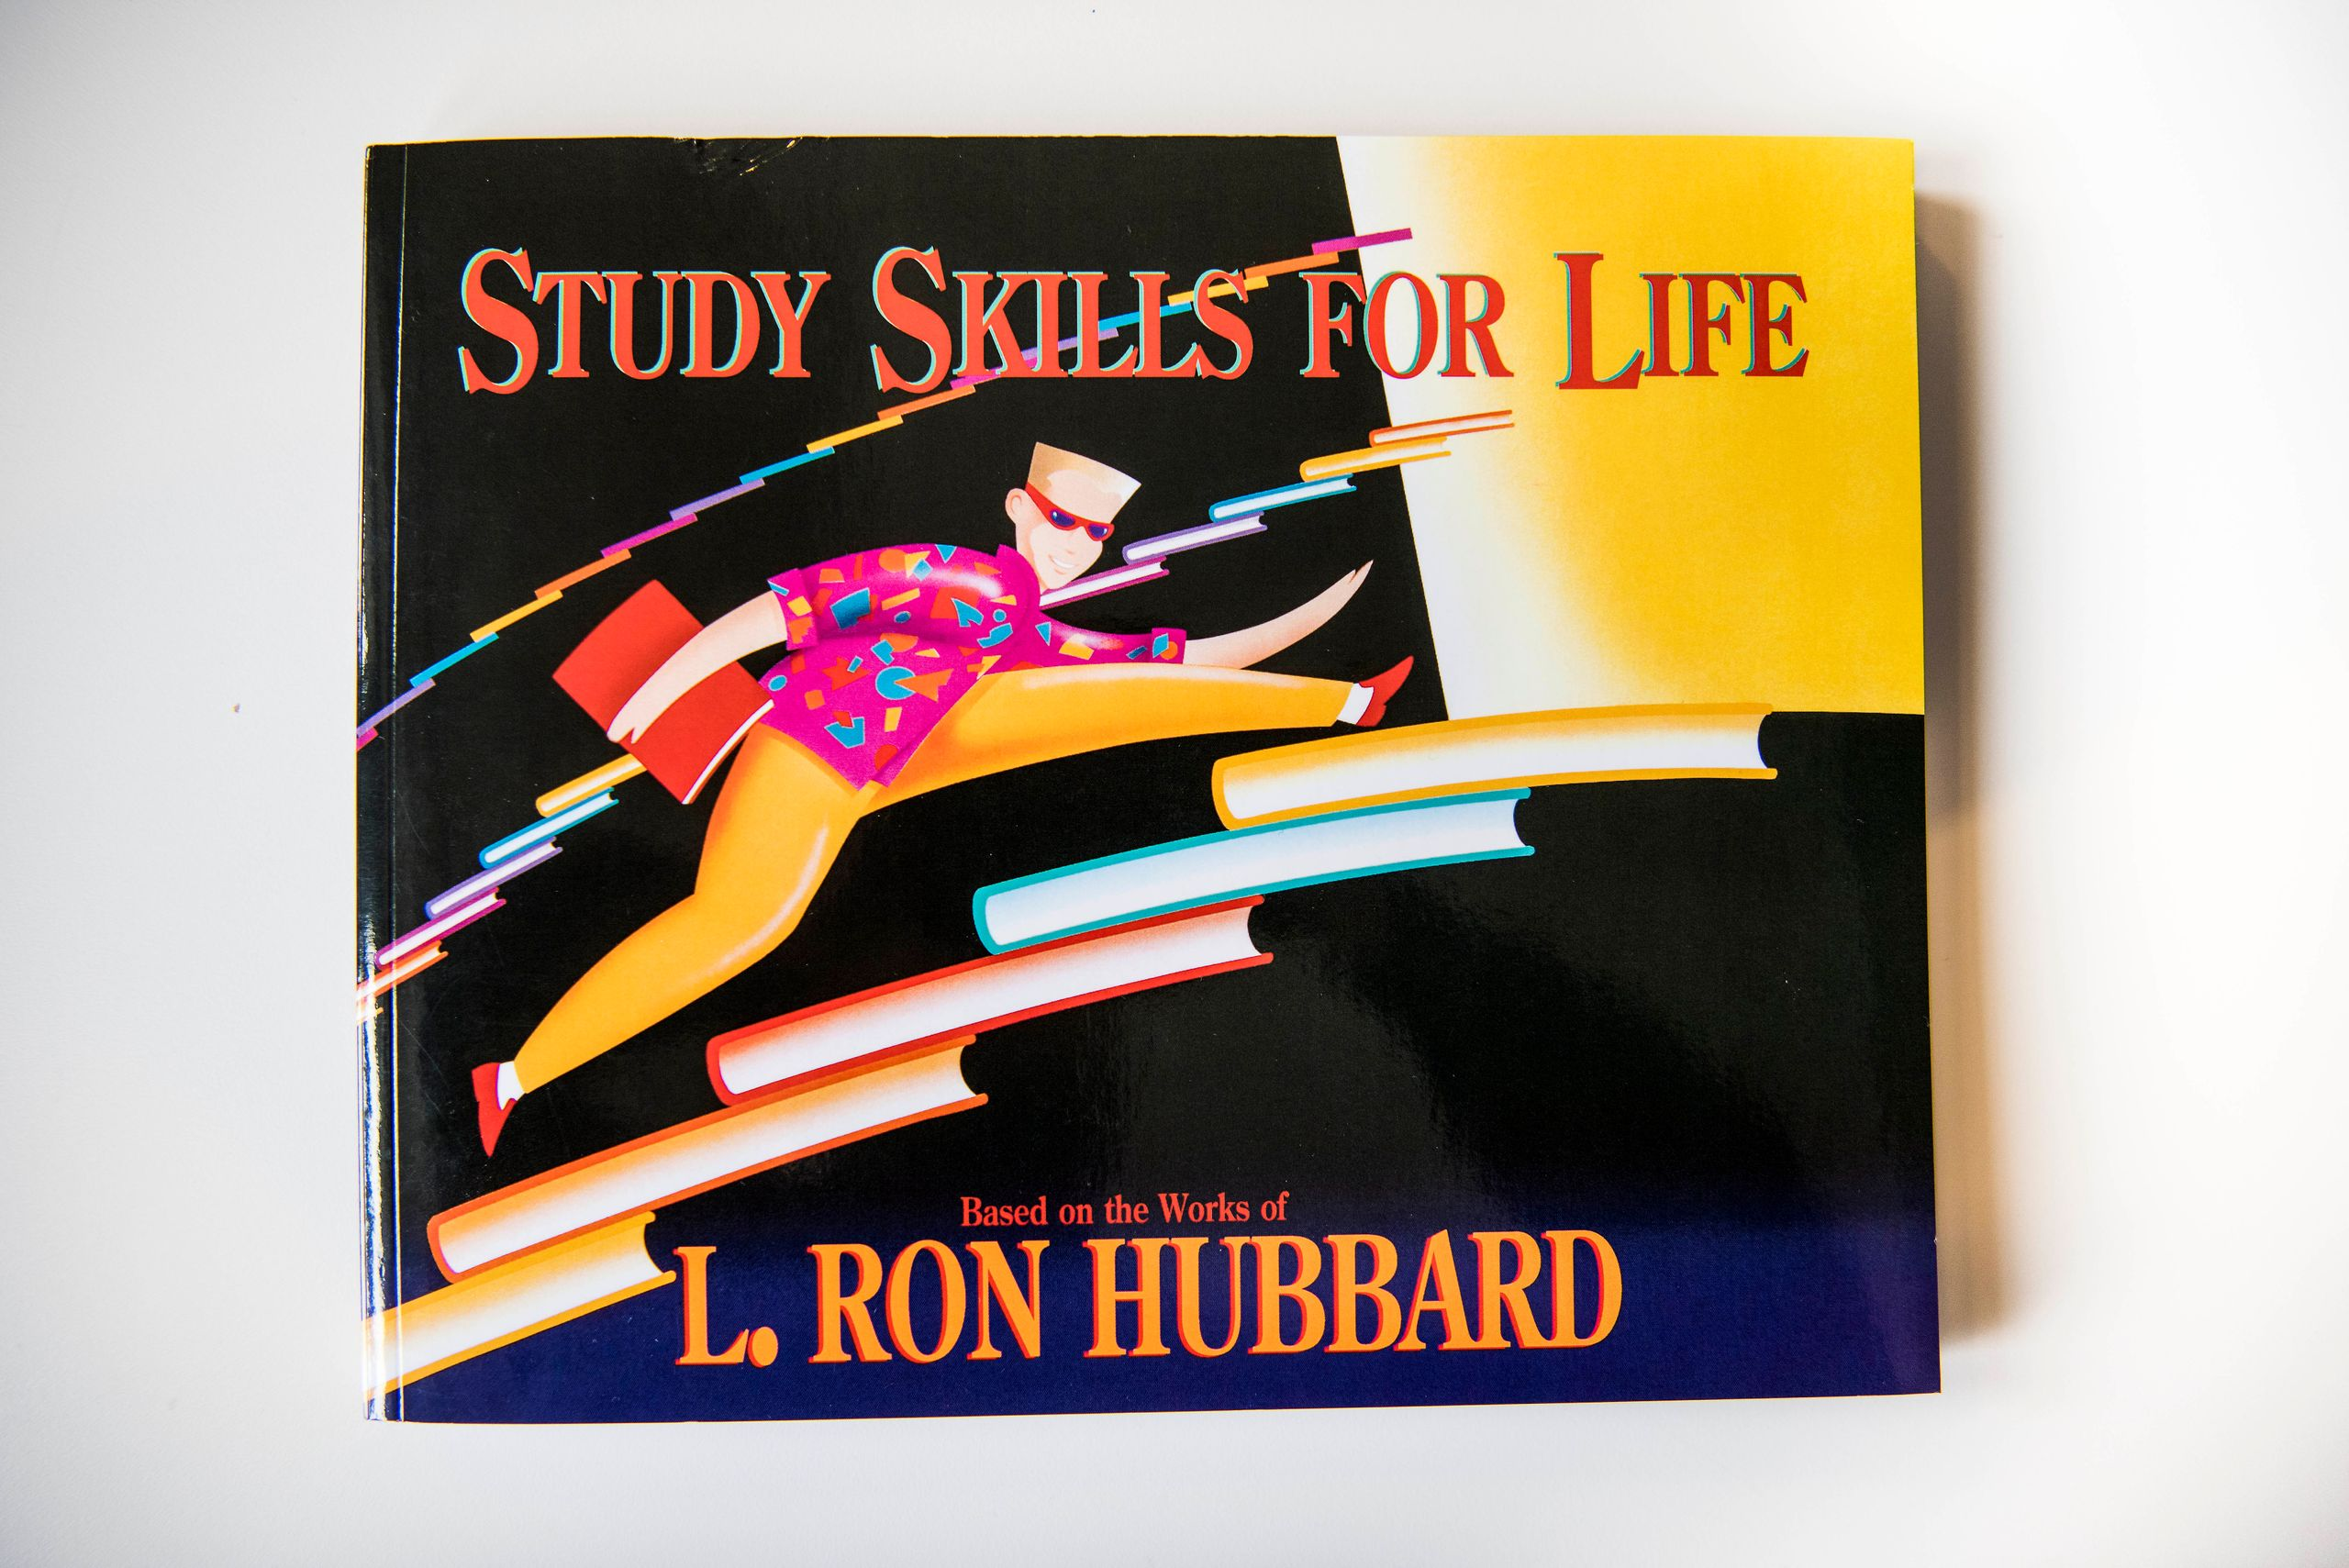 An Applied Scholastics book, Study Skills For Life.